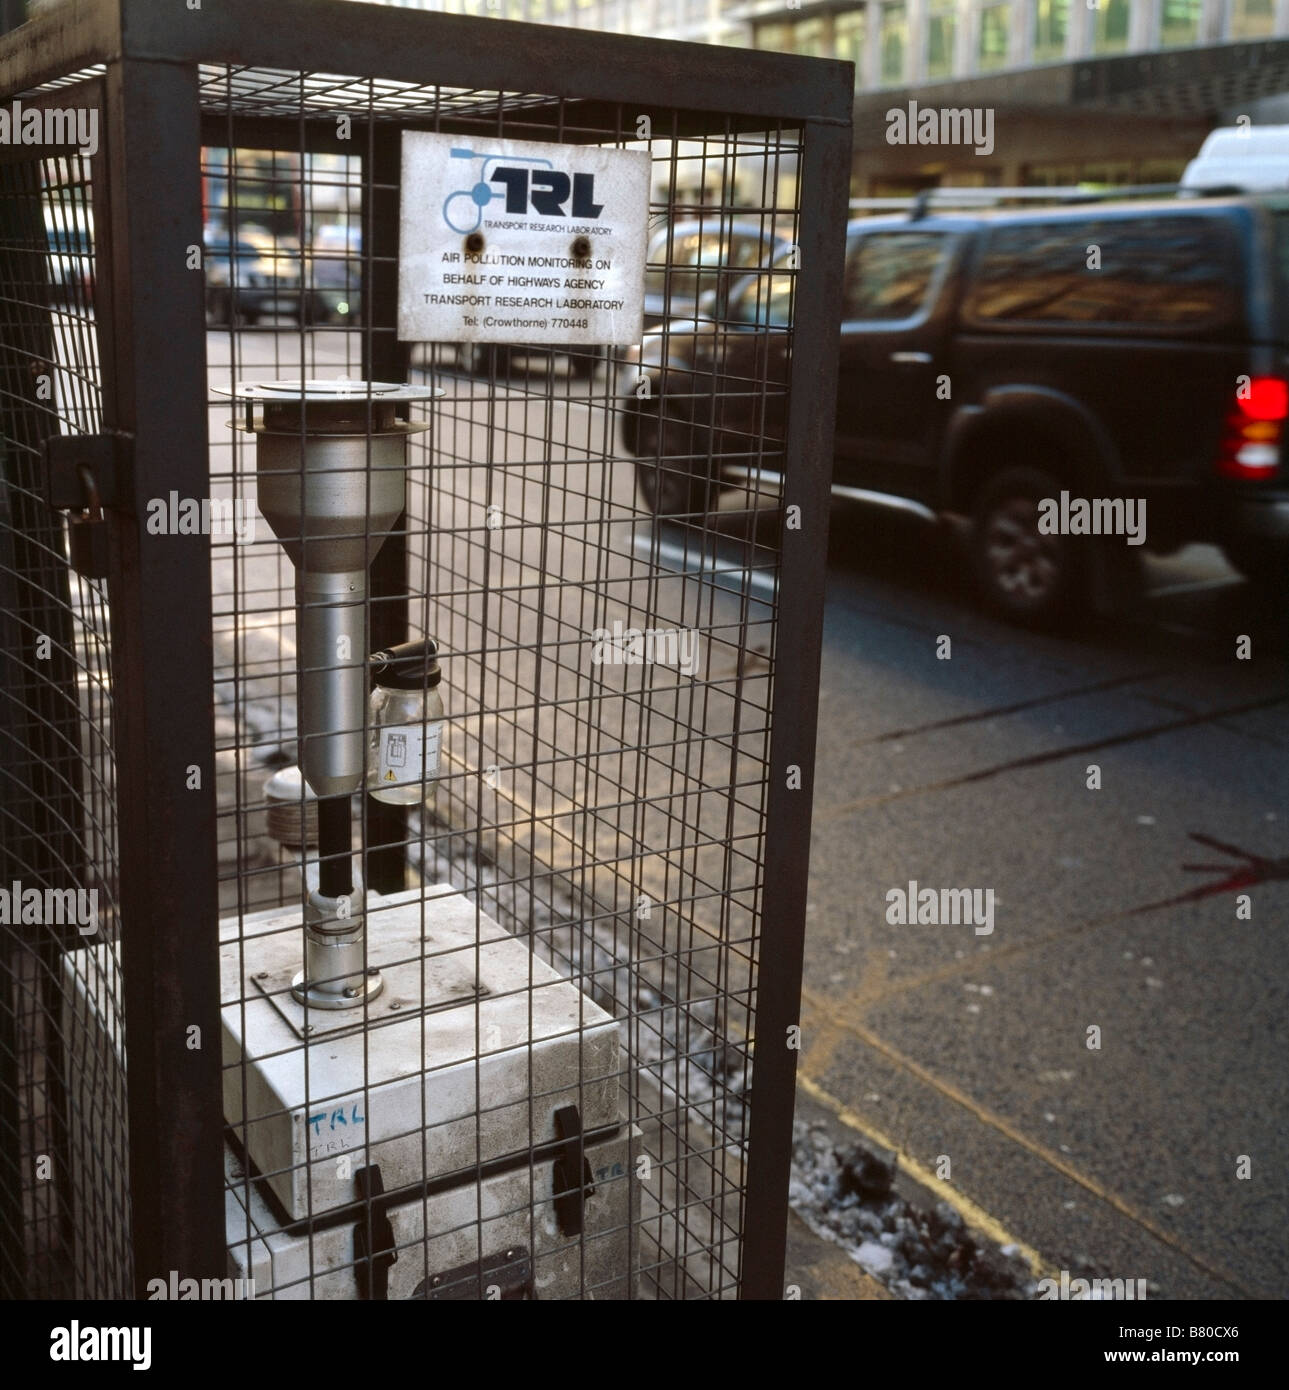 Air pollution monitoring equipment. Victoria Street, Westminster, London, England, UK. - Stock Image